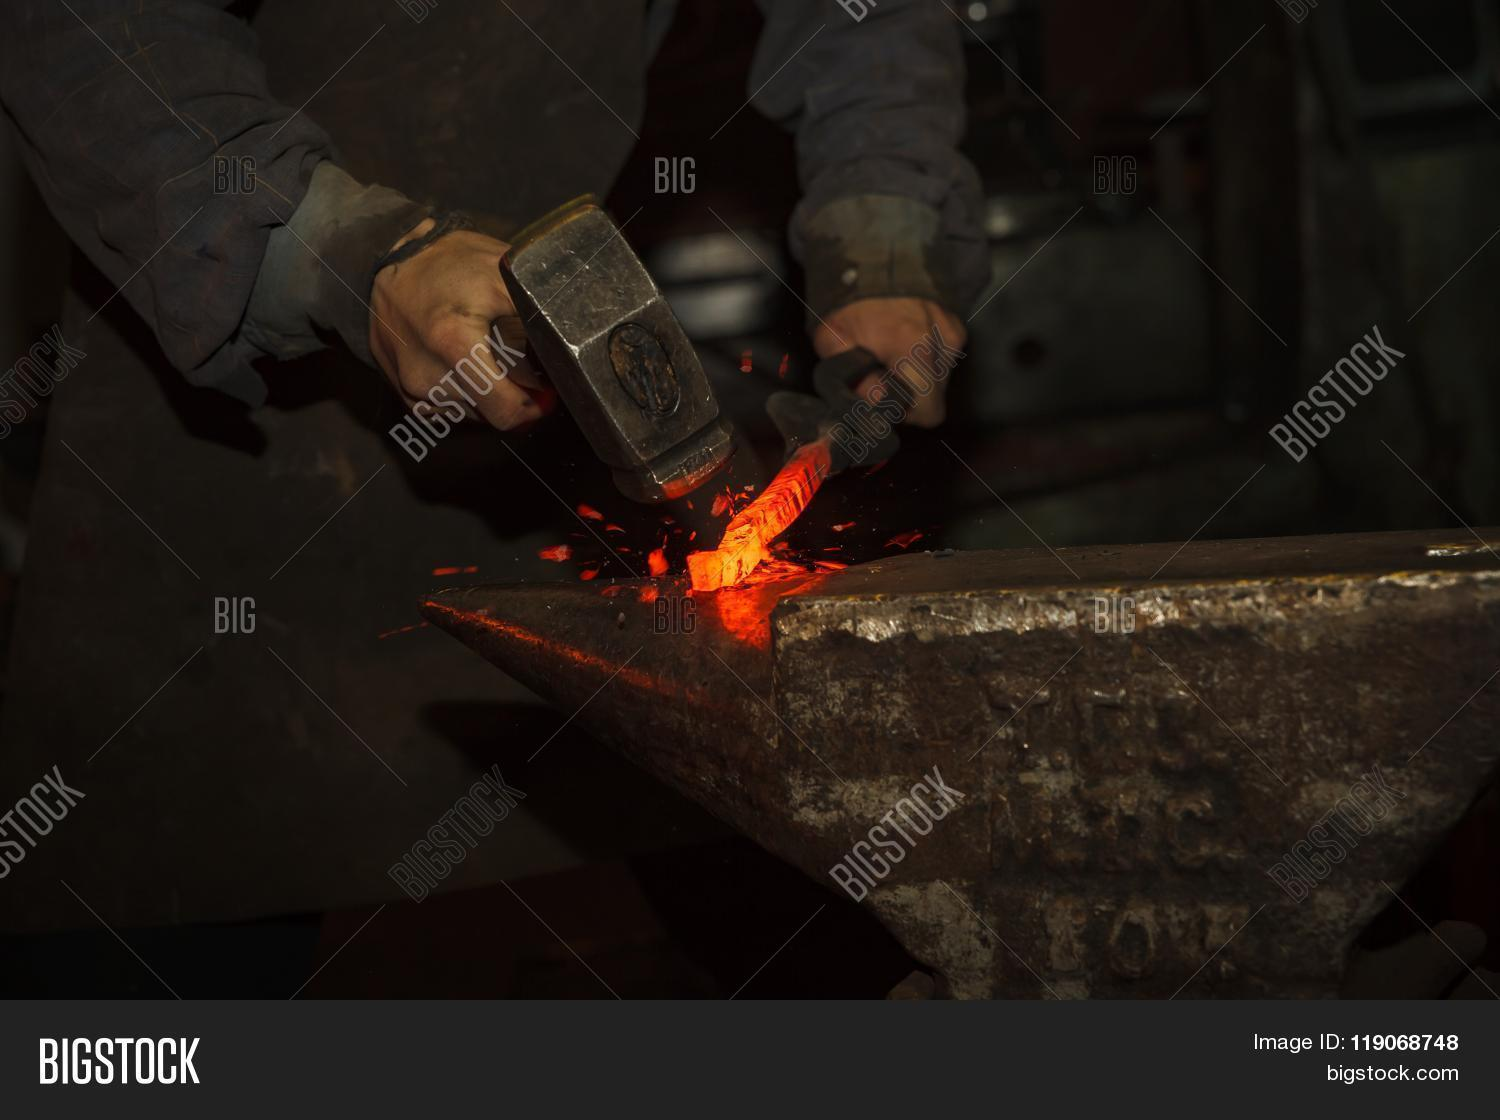 anvil,art,bending,blacksmith,blacksmithing,closeup,craft,creativity,farrier,forging,glowing,hammer,history,hobbies,homemade,hummering,iron,manual,master,metal,metalsmith,old,profession,red,shaping,shop,smith,sparks,steel,vintage,work,worker,working